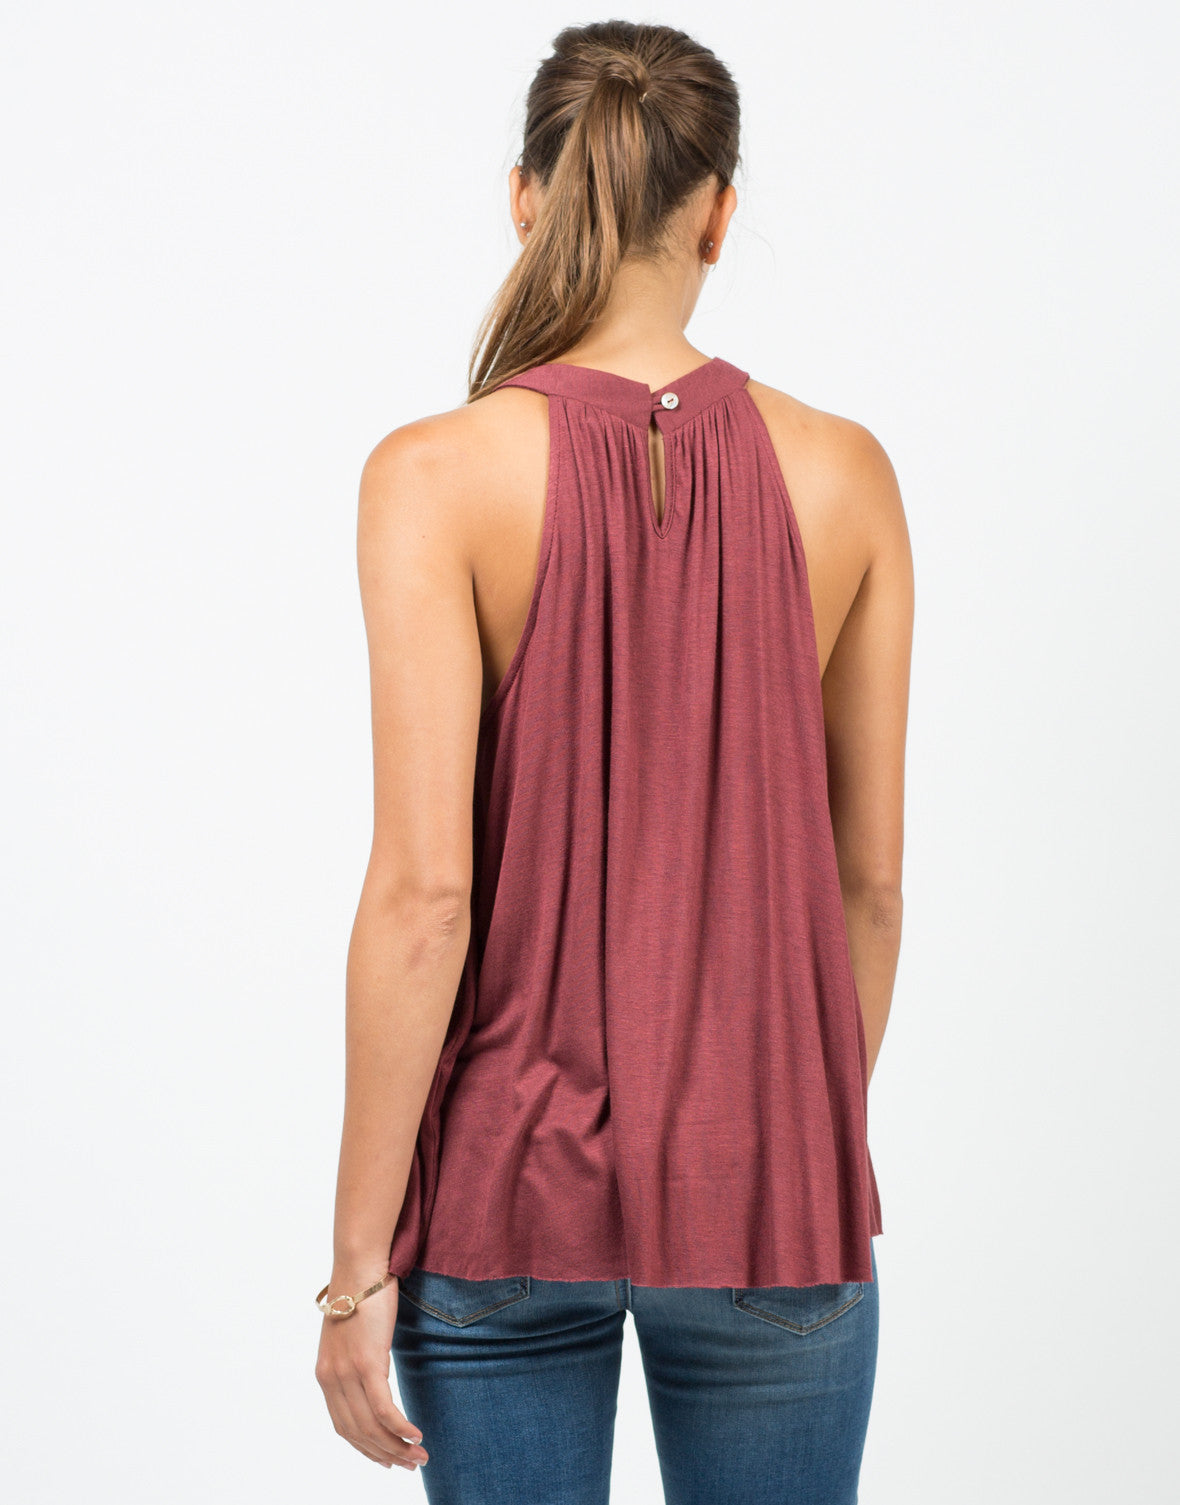 Back View of Flowy Halter Neck Top